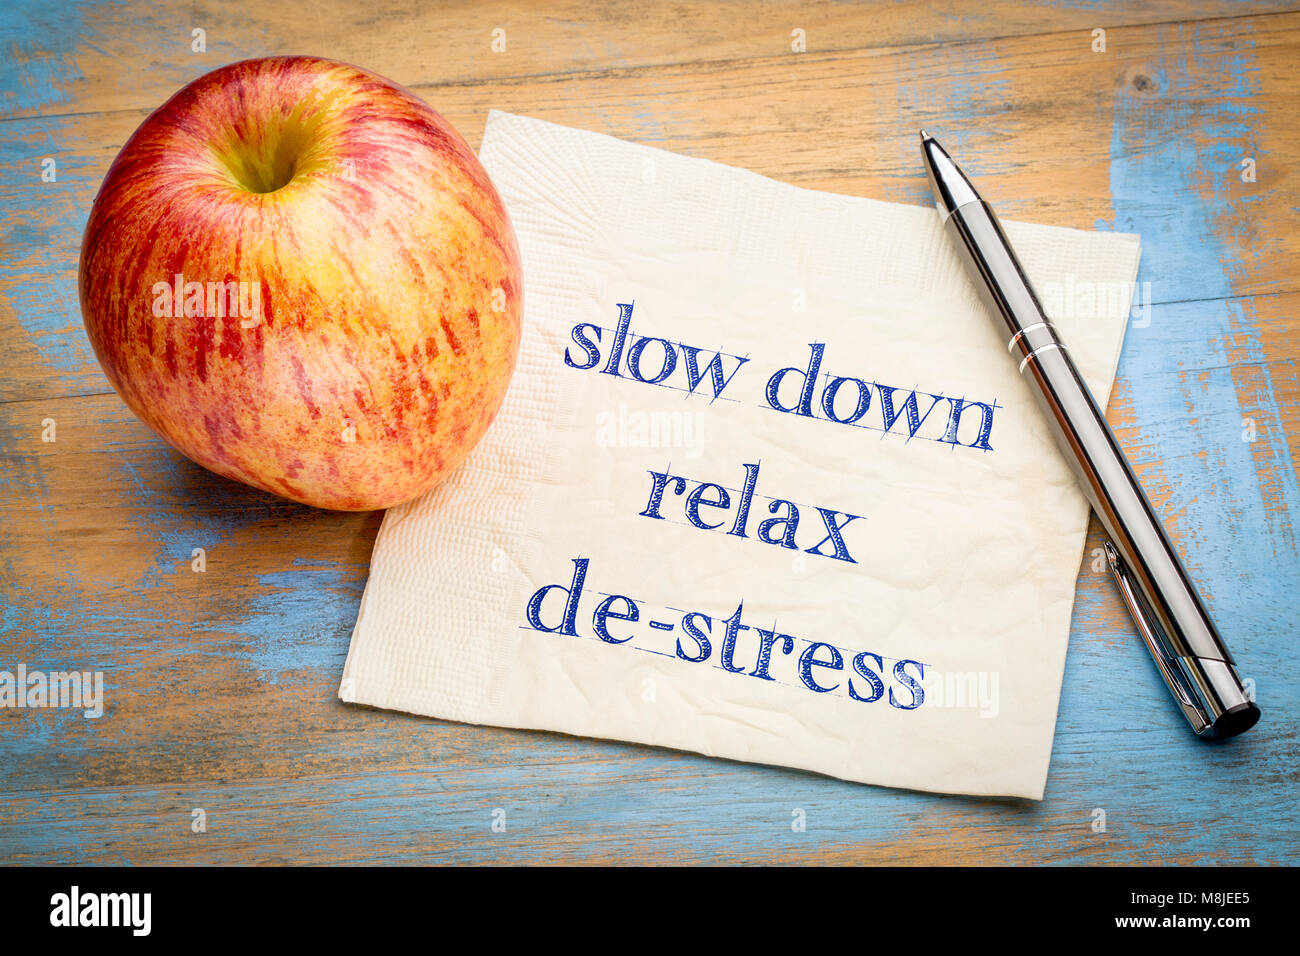 slow down, relax and de-stress - handwriting on a napkin with a fresh apple - Stock Image